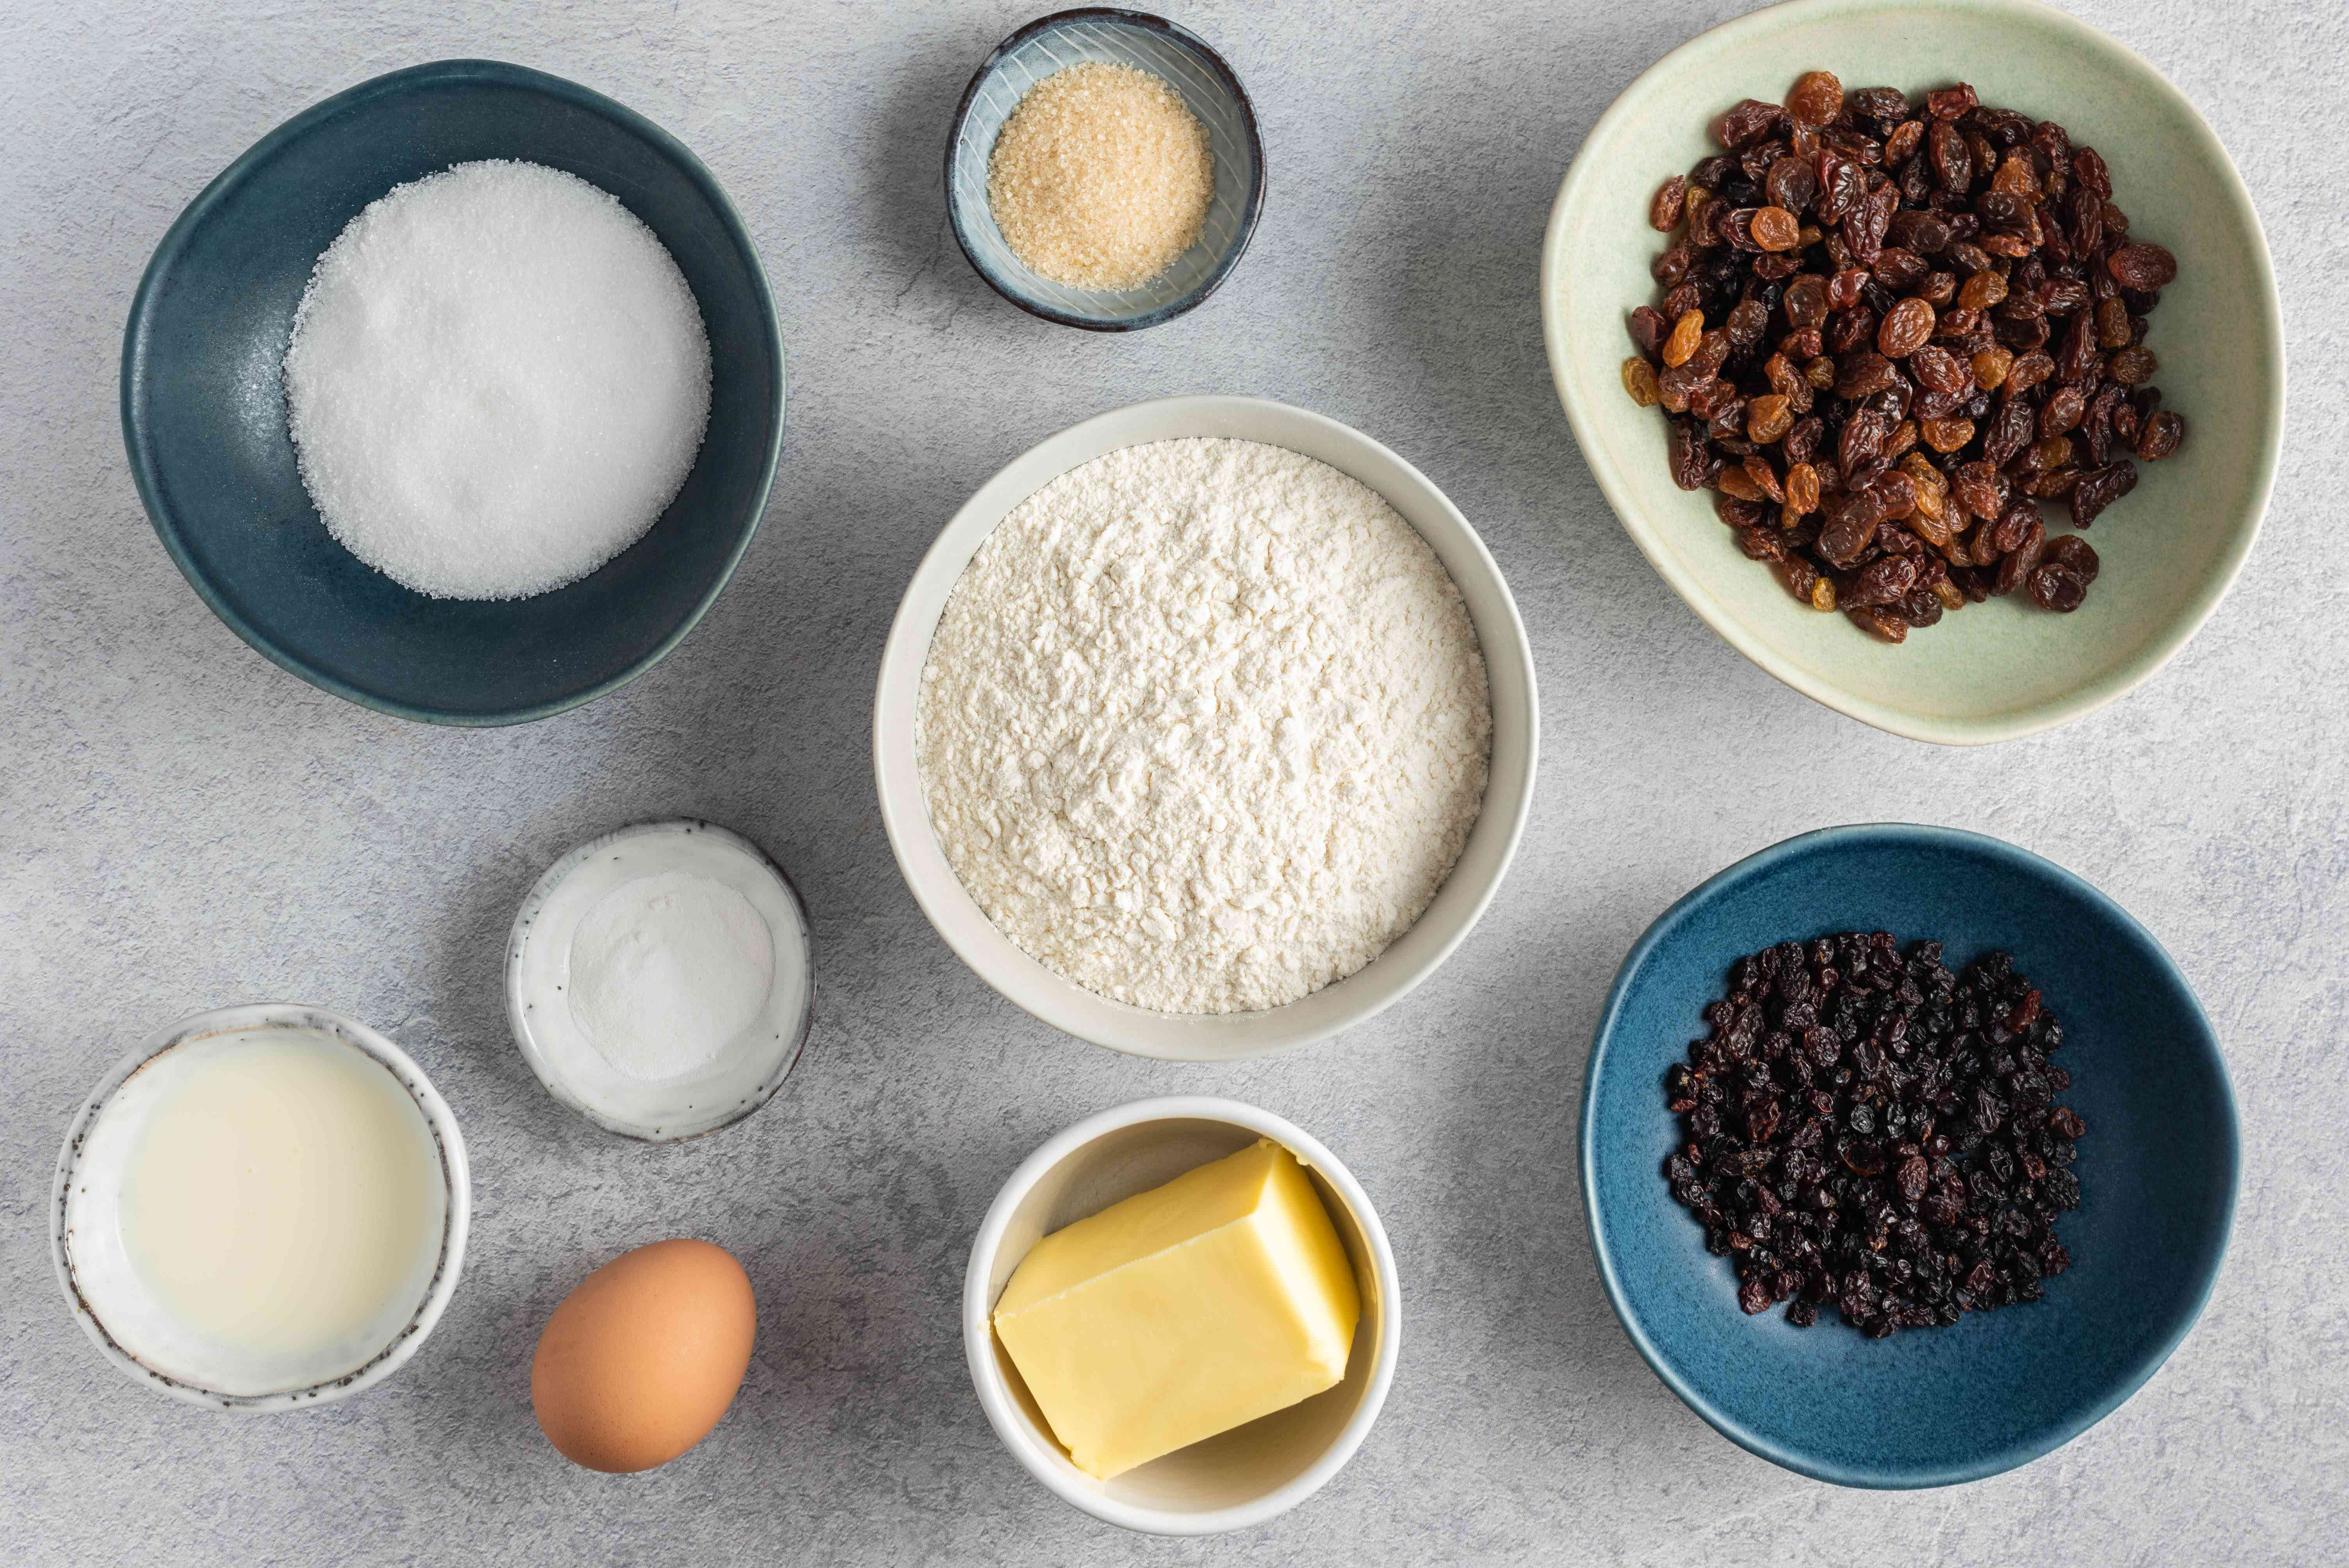 Ingredients for rock cake